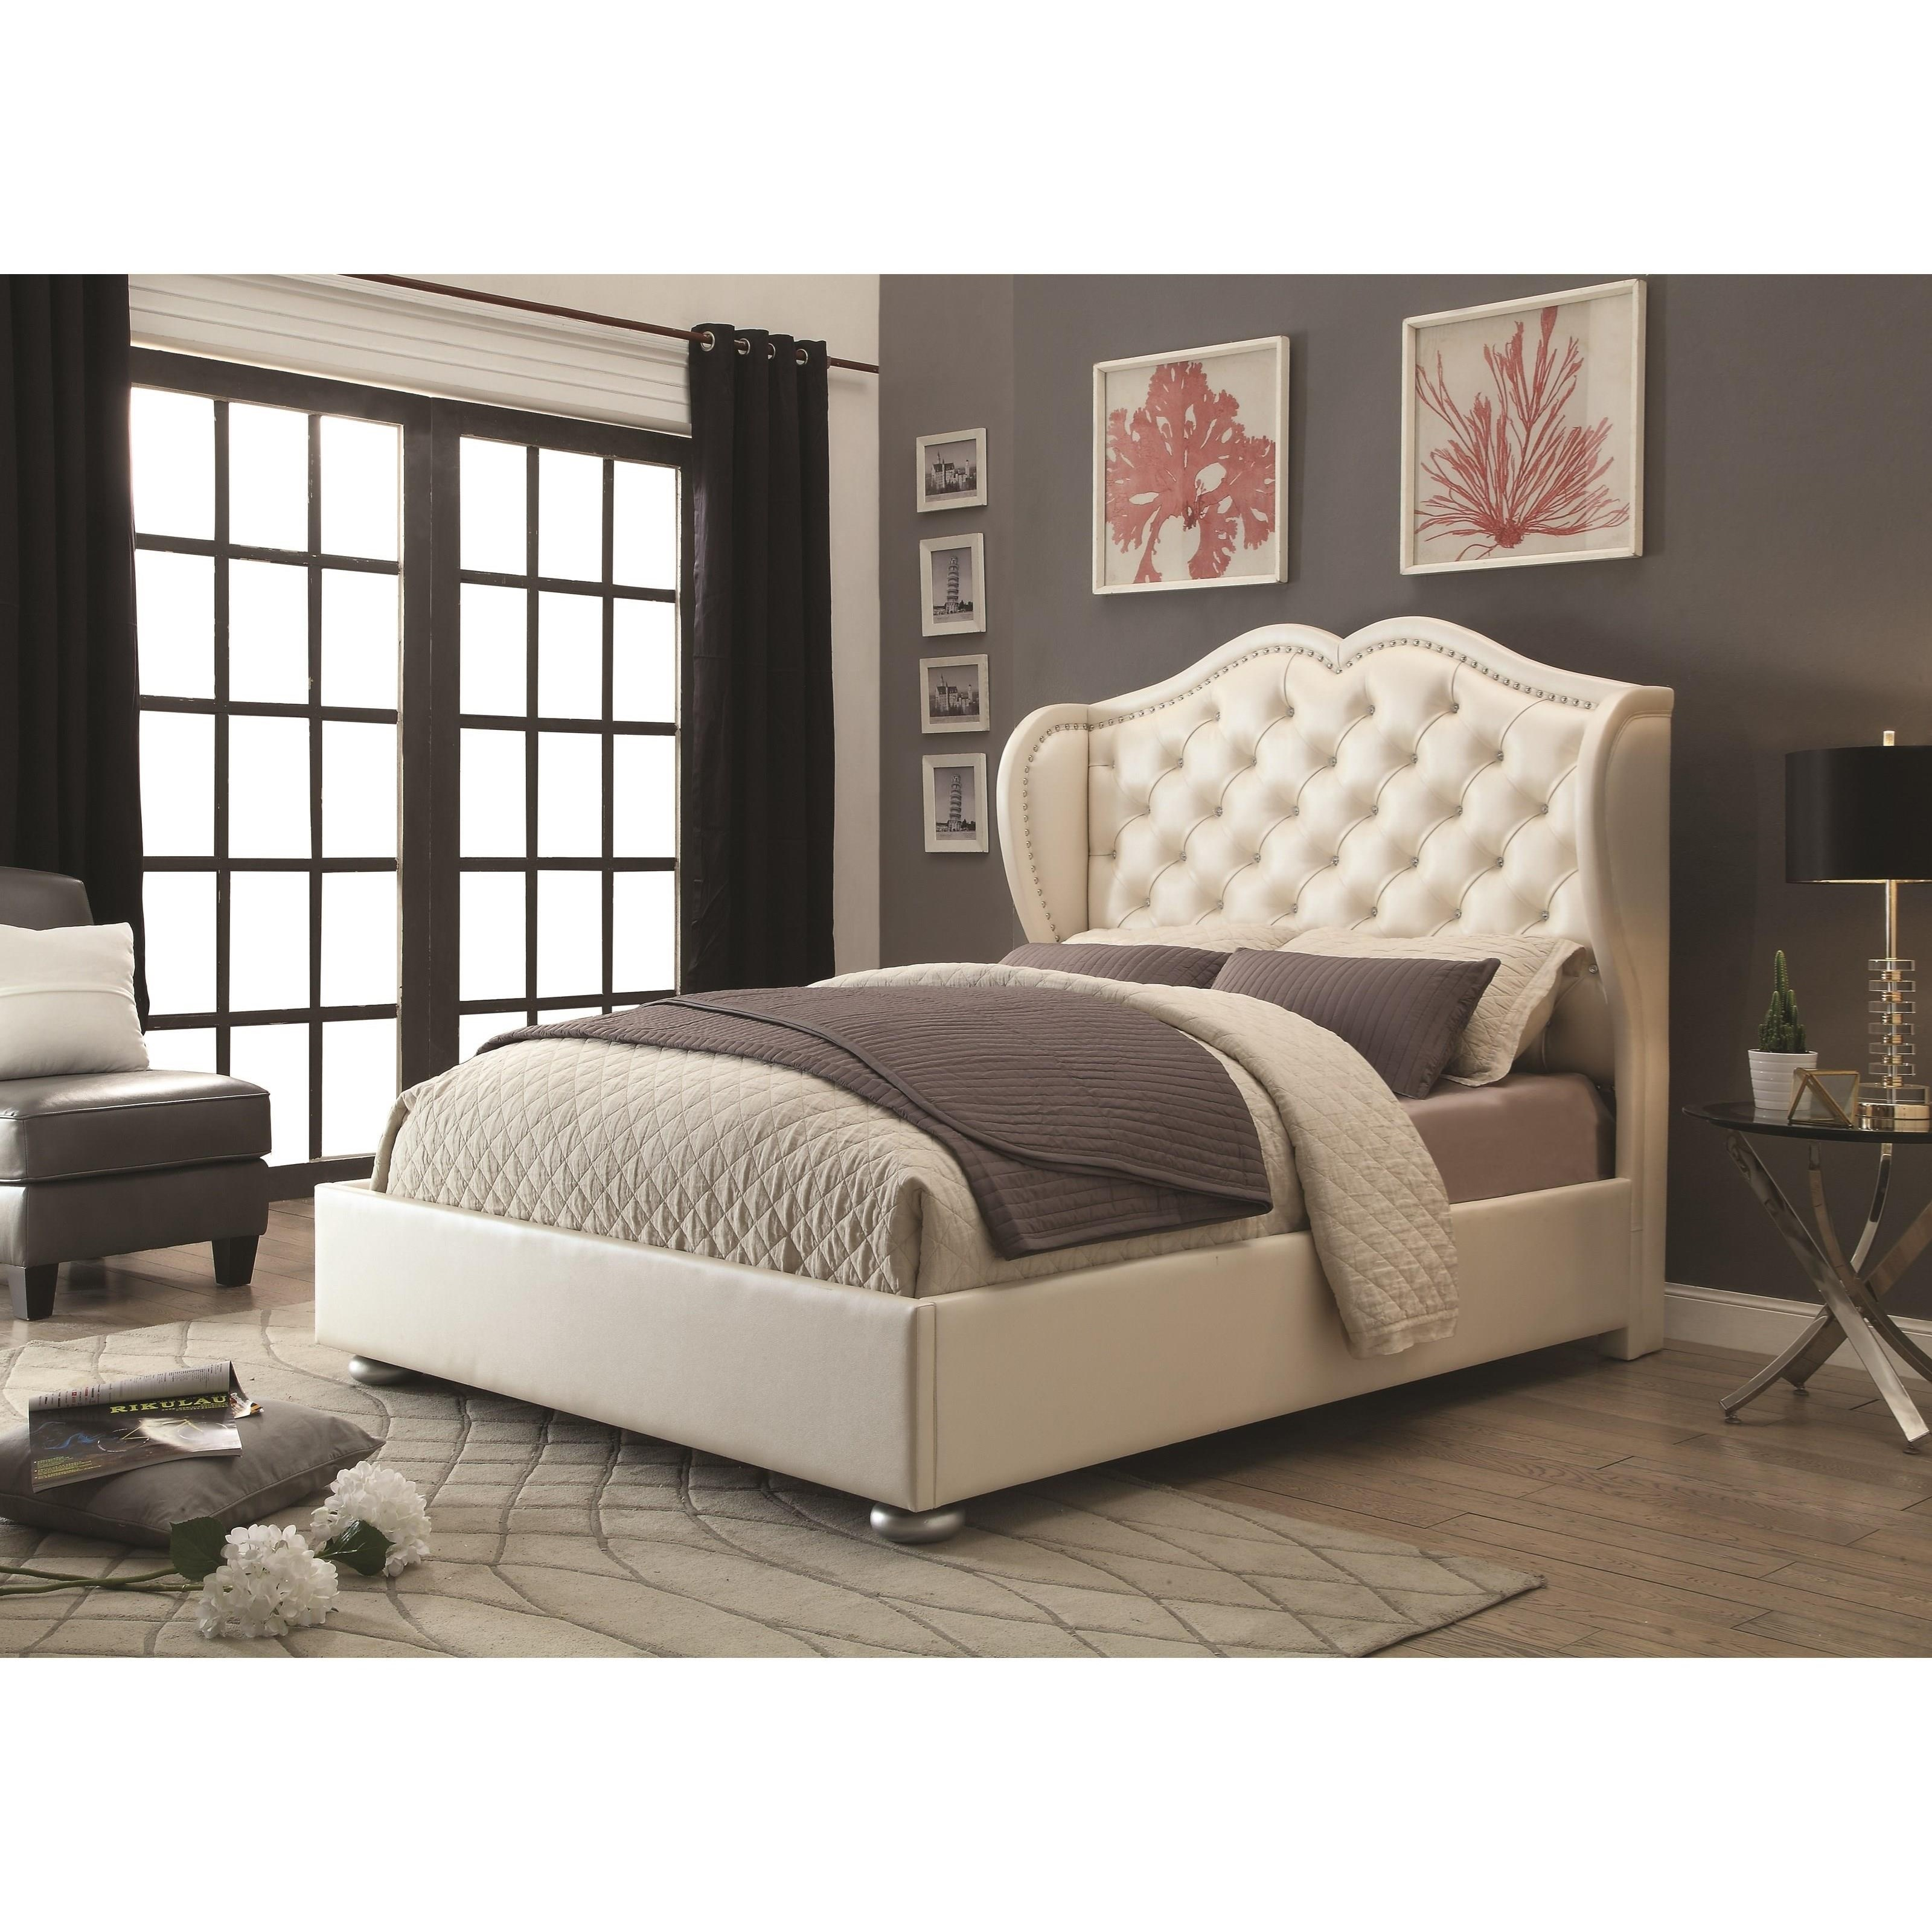 Coaster Upholstered Beds Queen Bed - Item Number: 302011Q